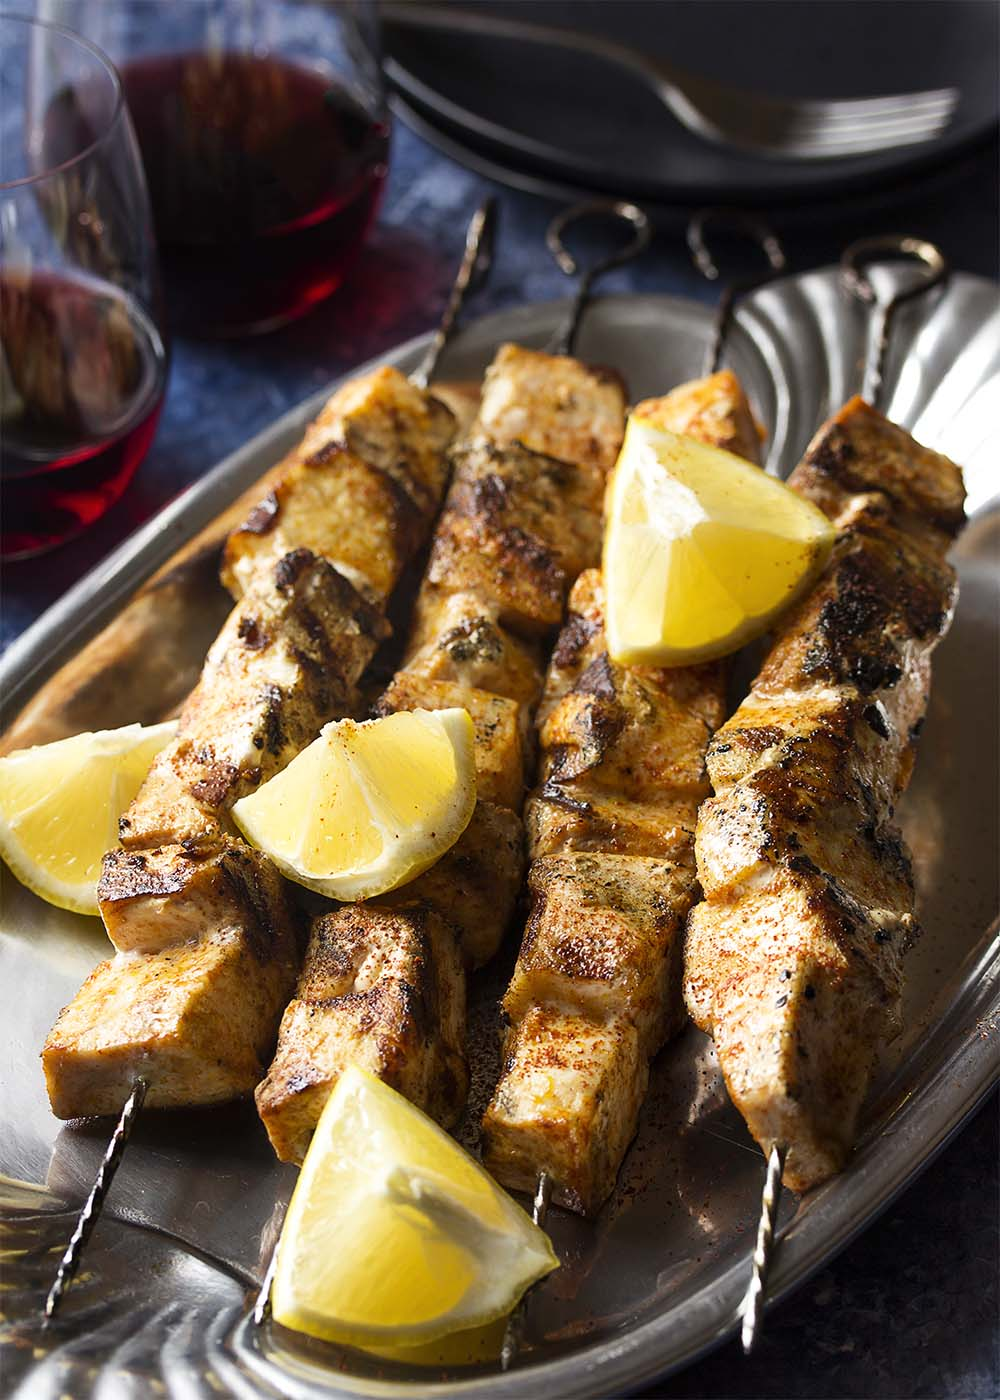 Spanish swordfish kebabs on skewers in a serving plate along with wedges of lemon.